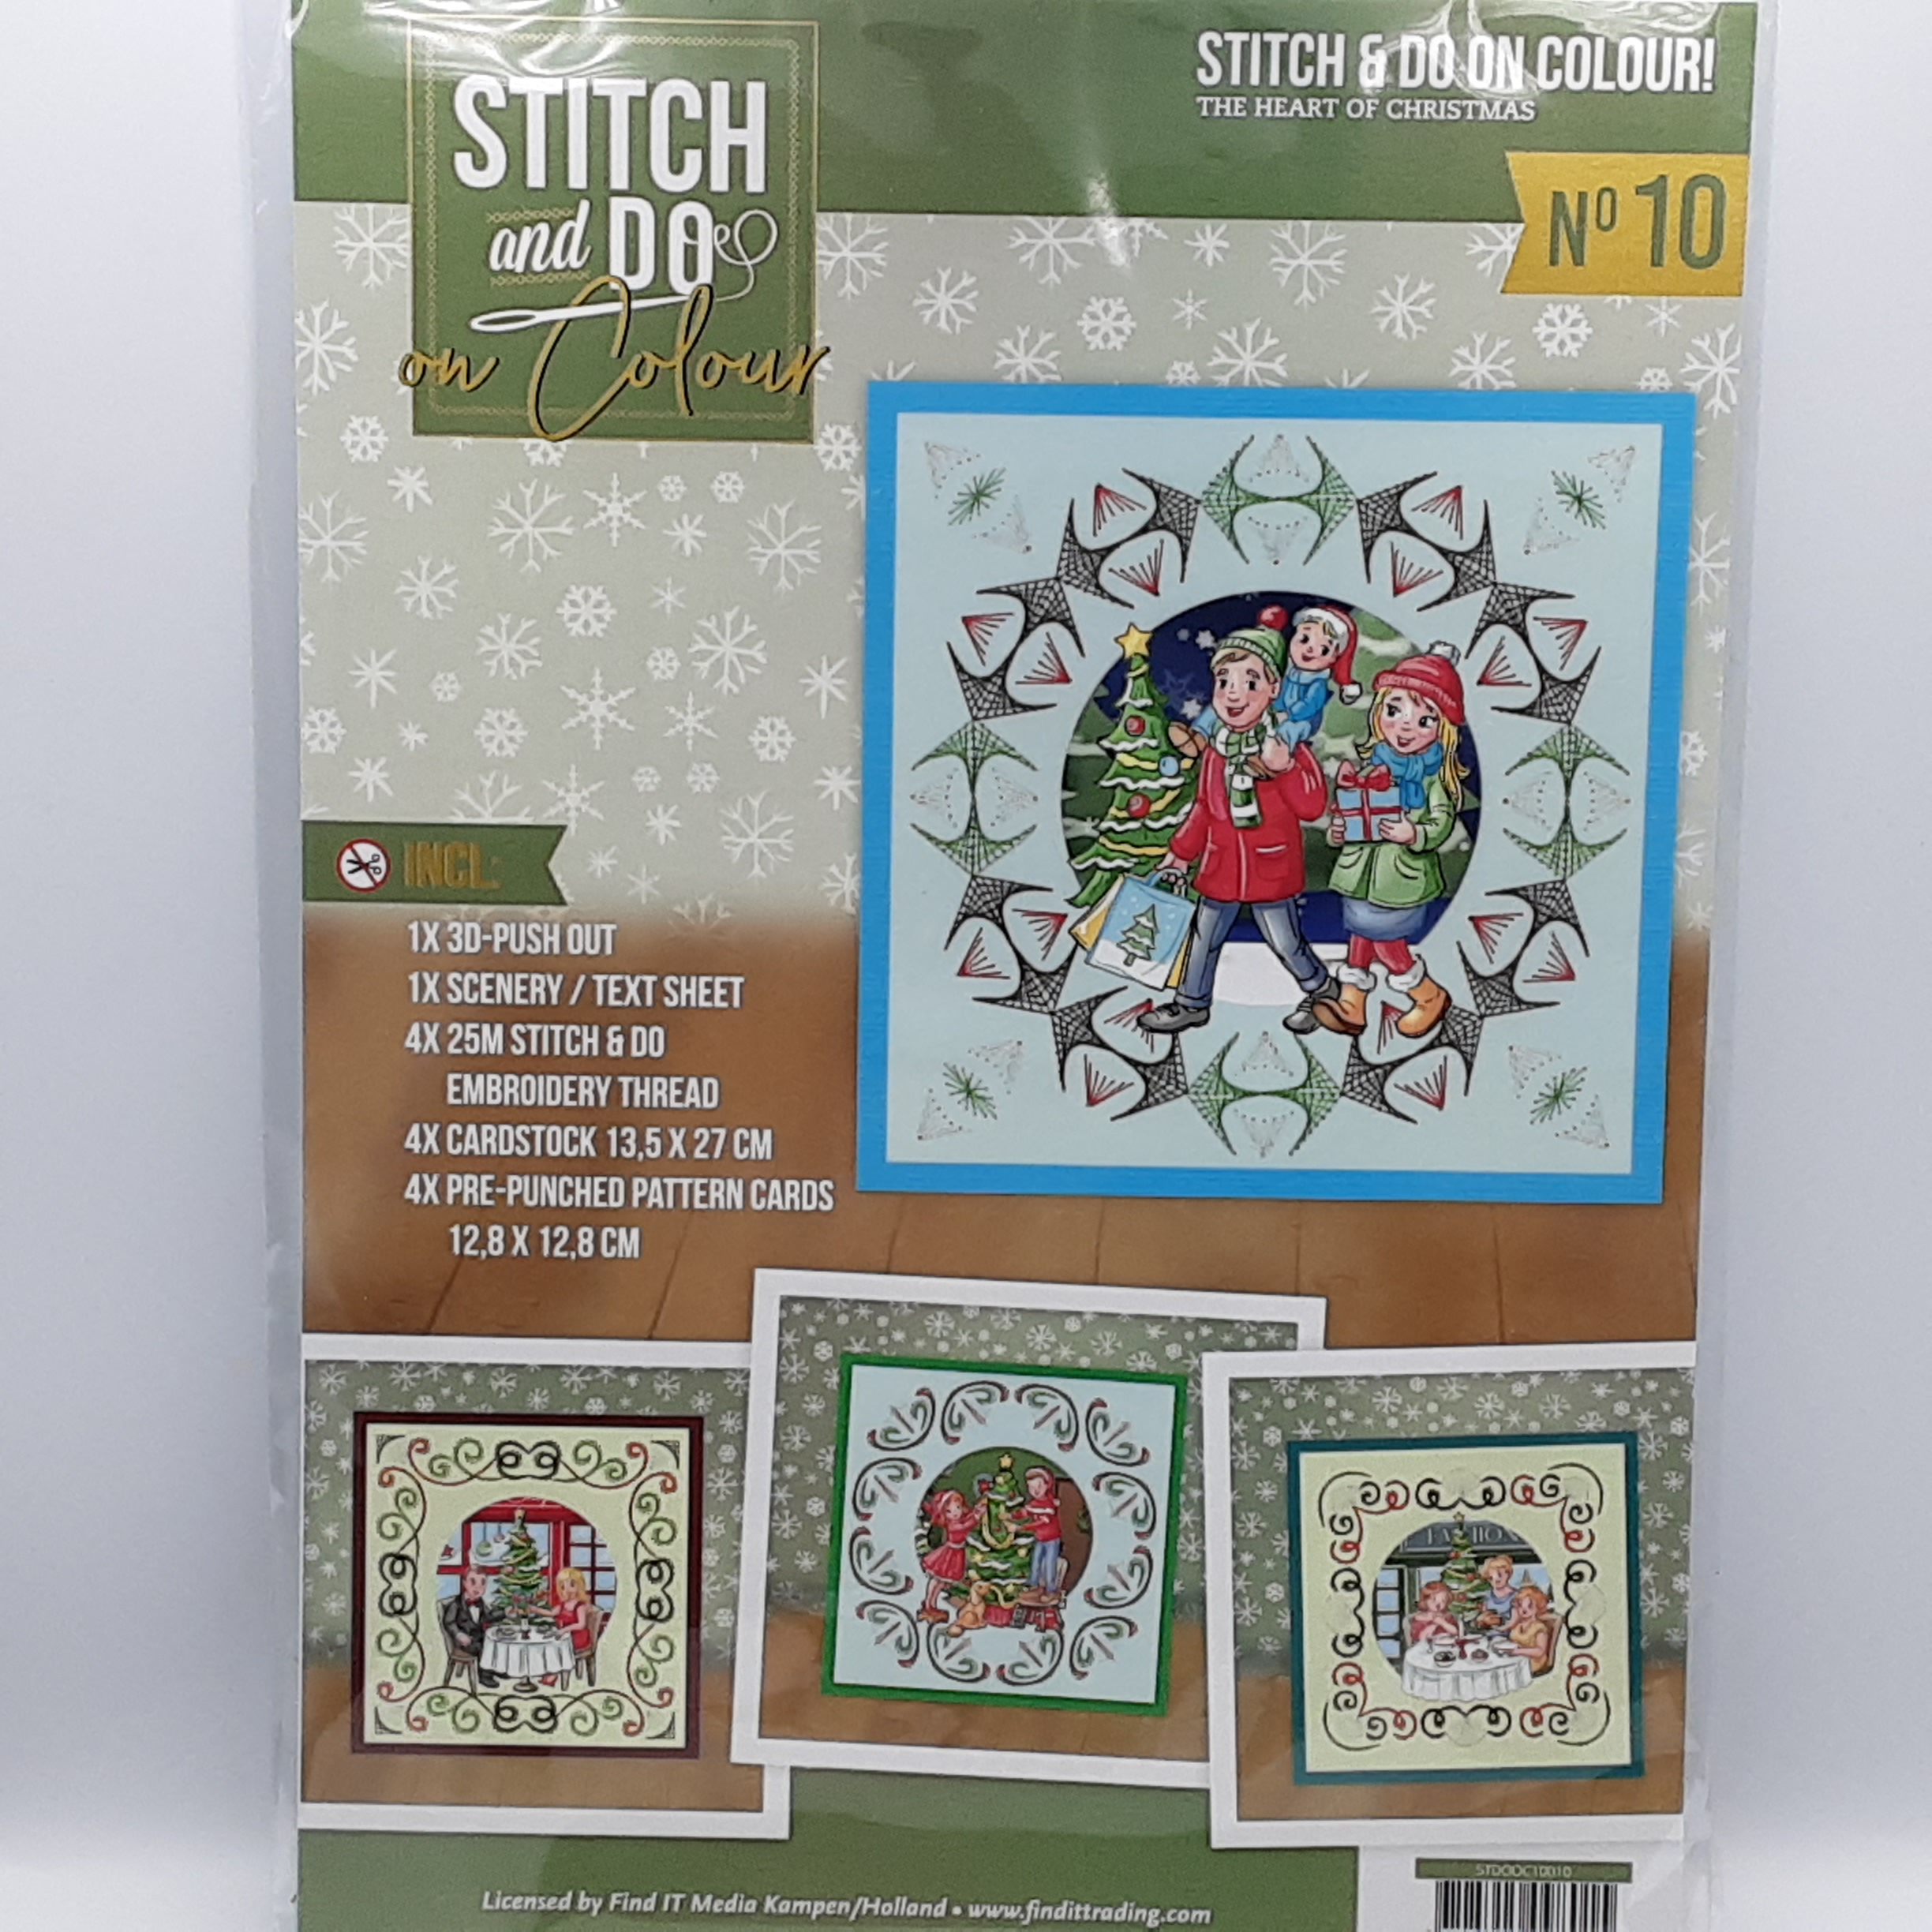 Stitch and do on color 10